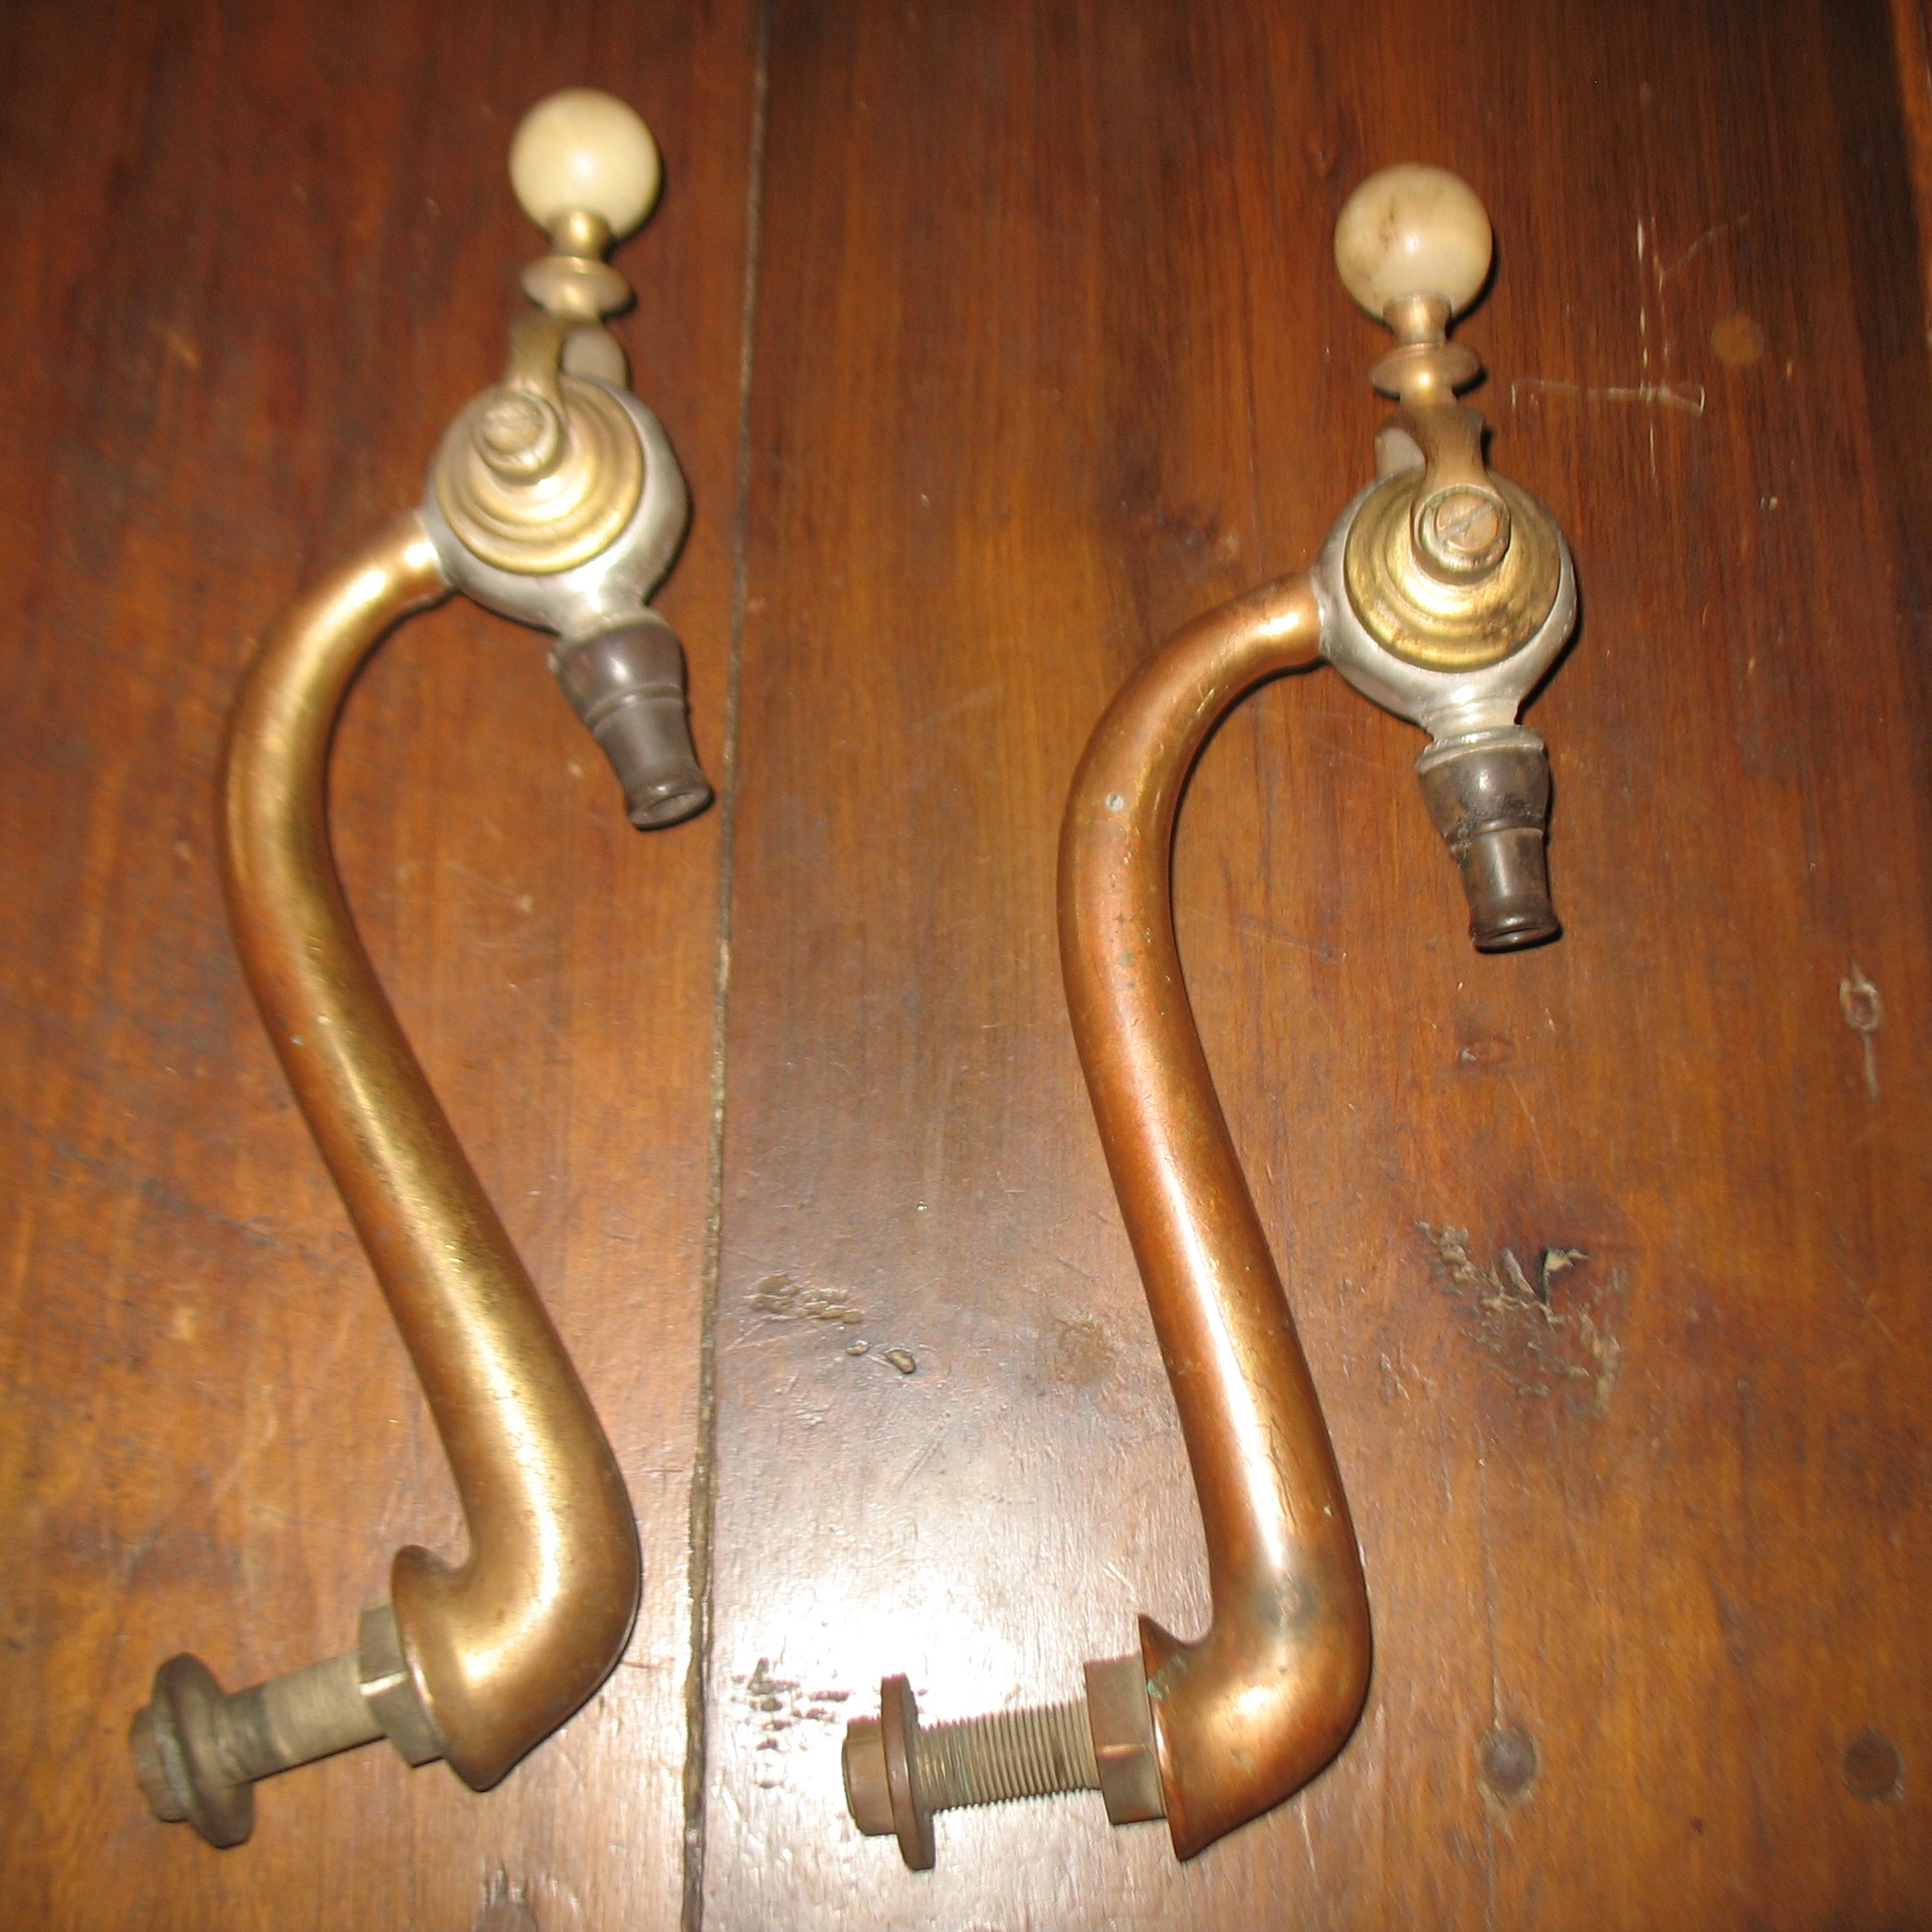 Wonderful unusual Beer Taps from a Pub in London. Perfect for your Home Bar.BraxtonDixon often uses these larger bar pieces as unusual tub fillers.These are heavy Brass with Alabaster knobs and Bakelite tips. Fill your mug with the REAL thing and enjoy knowing you have a piece of history.  Price upon request